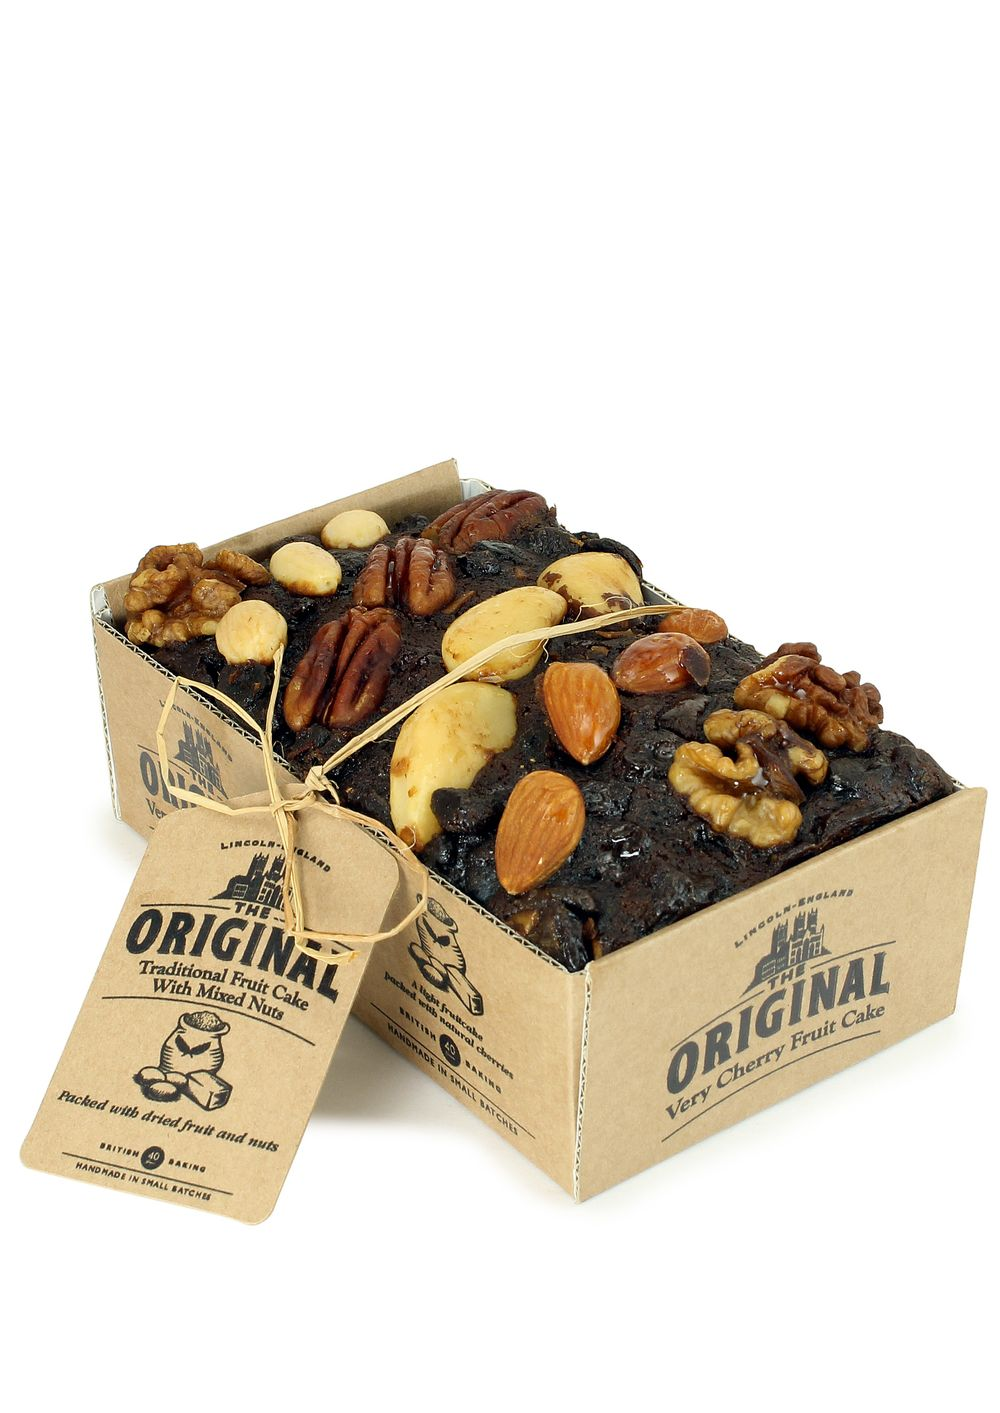 Traditional Fruit Cake with Mixed Nuts